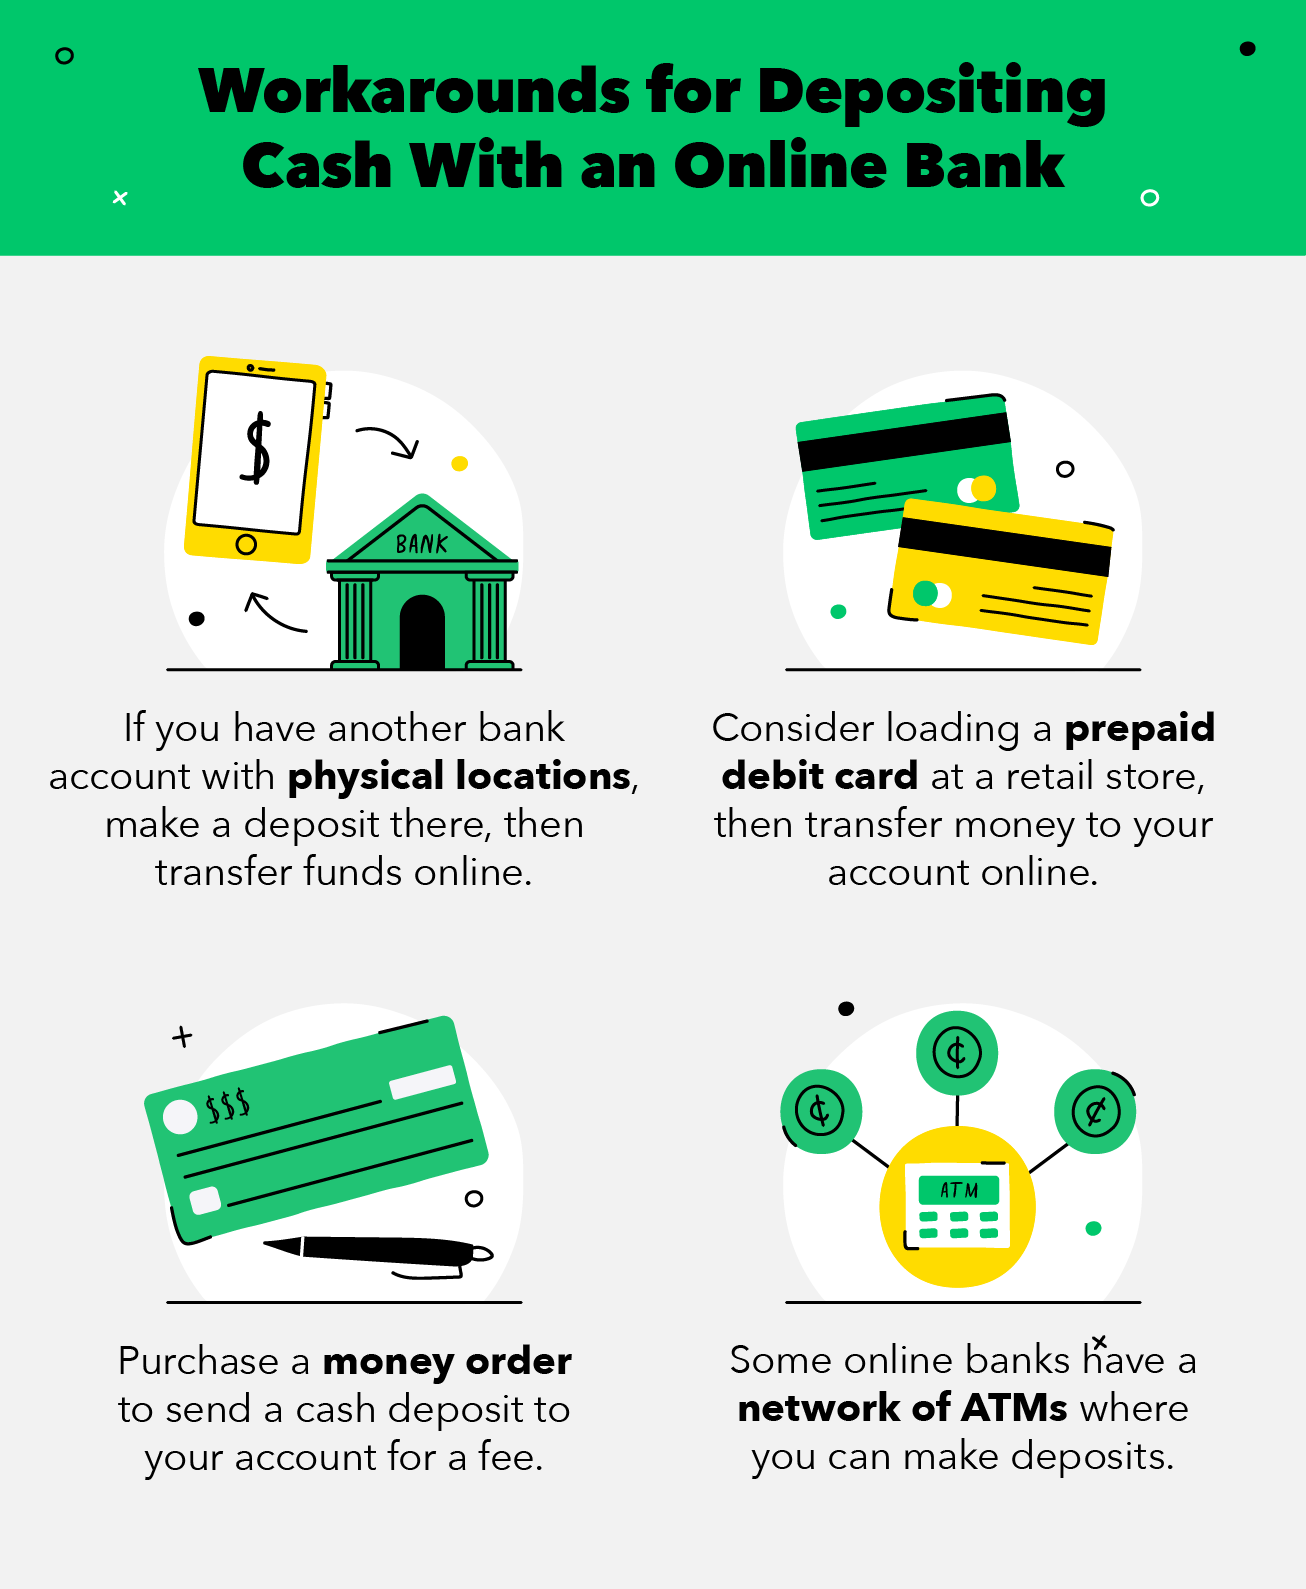 Workarounds for depositing cash with an online bank